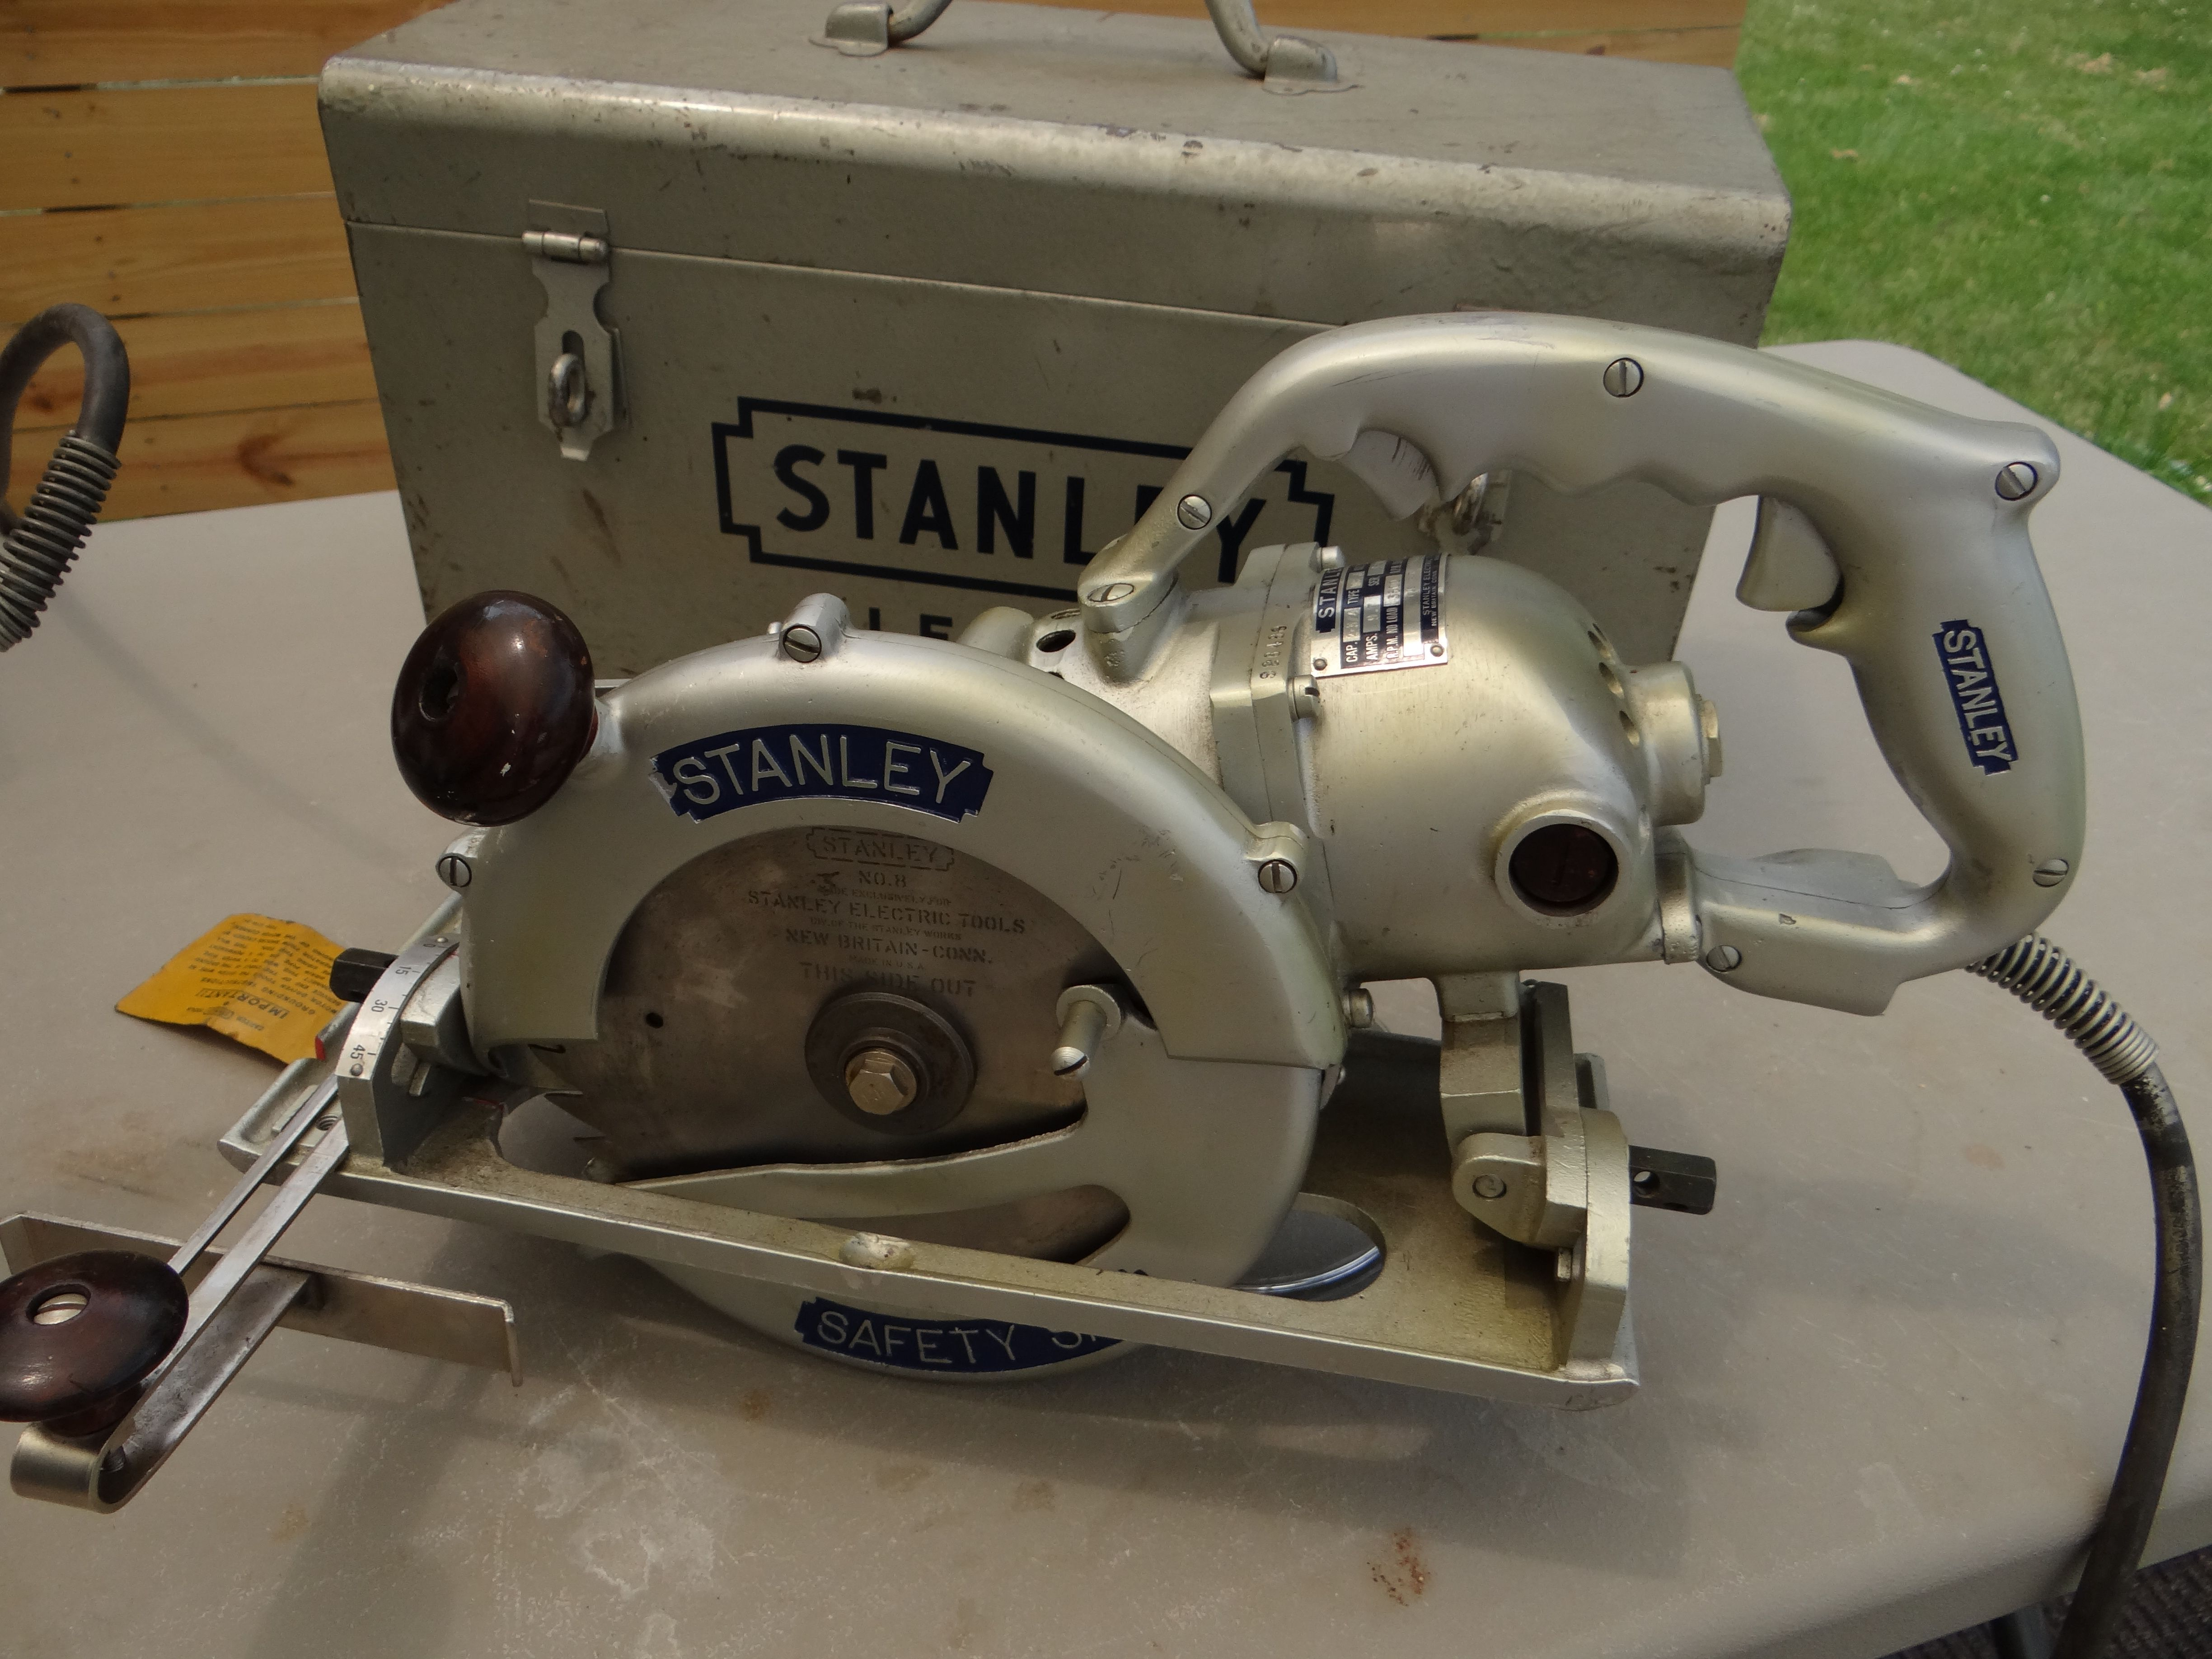 medium resolution of 1950 stanley w8safety saw circular saw cool tools power saw vintage antiques